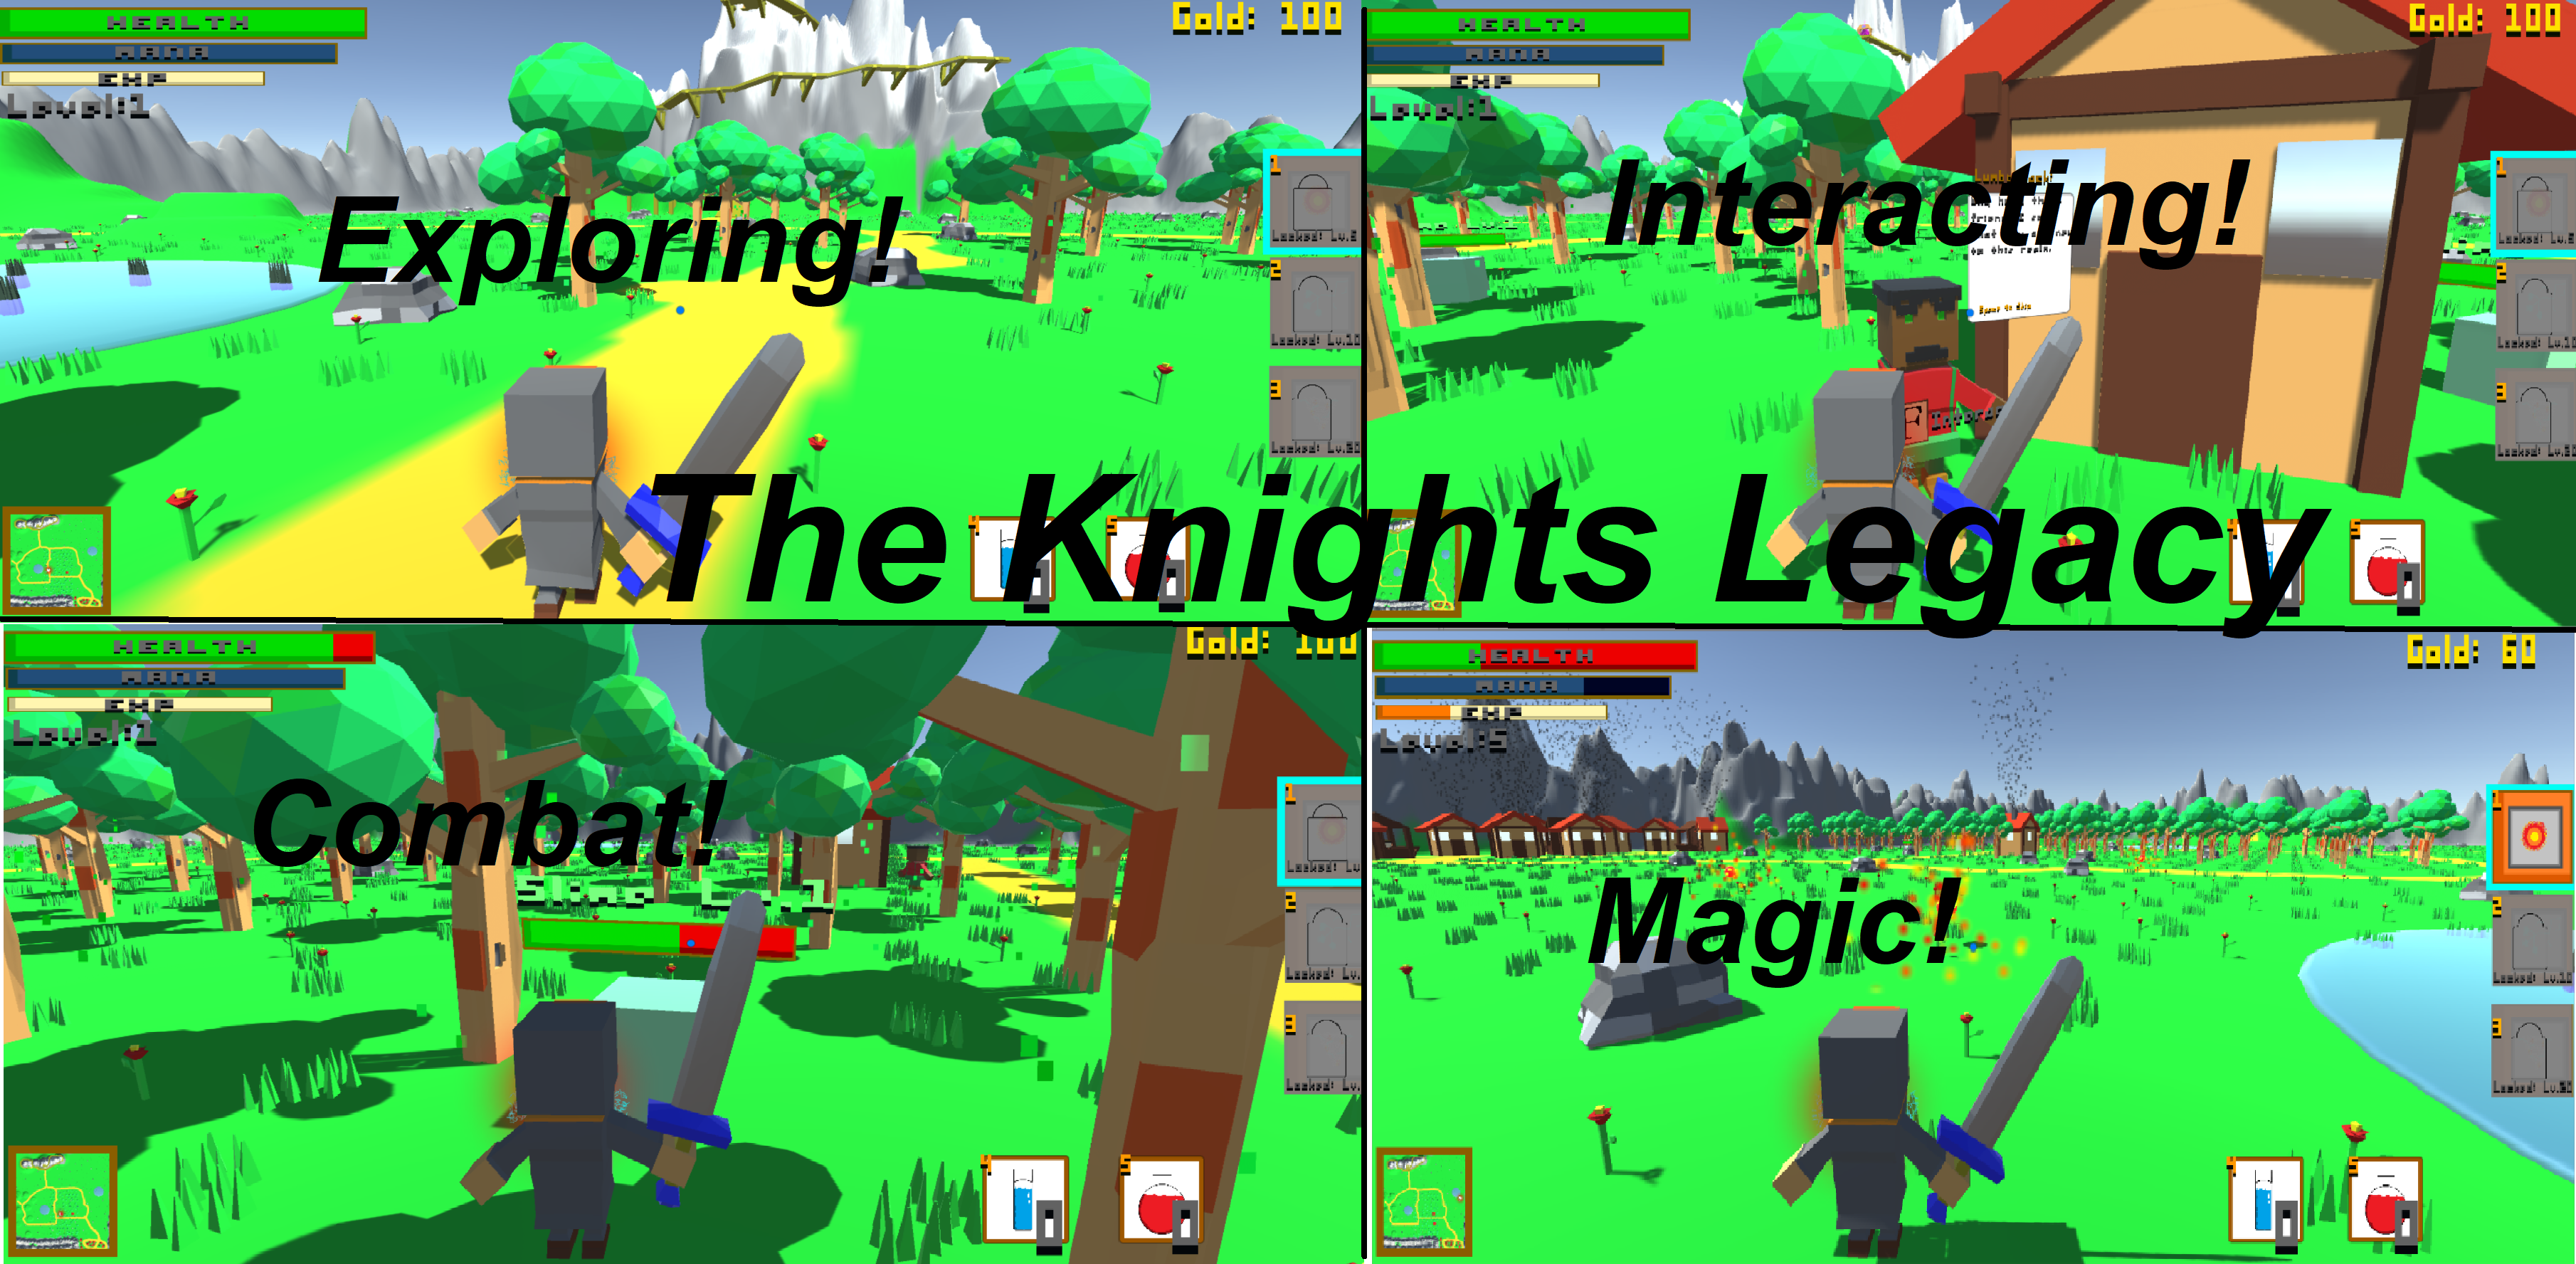 The Knights Legacy